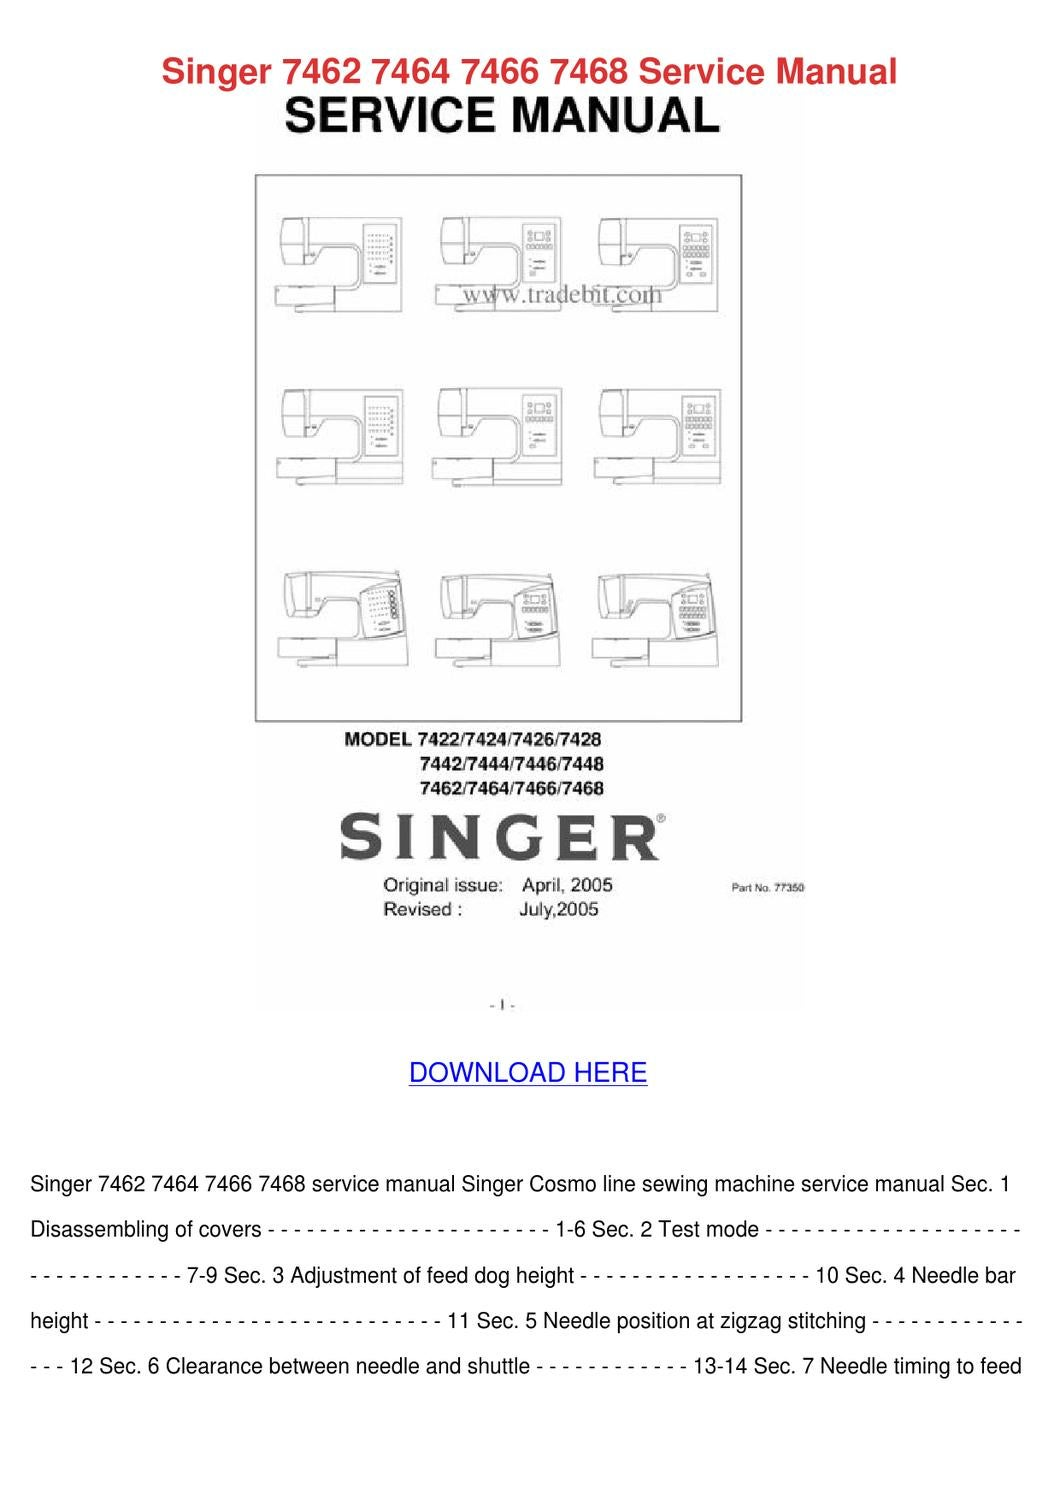 Singer 7462 7464 7466 7468 Service Manual by Janett Kofford - issuu